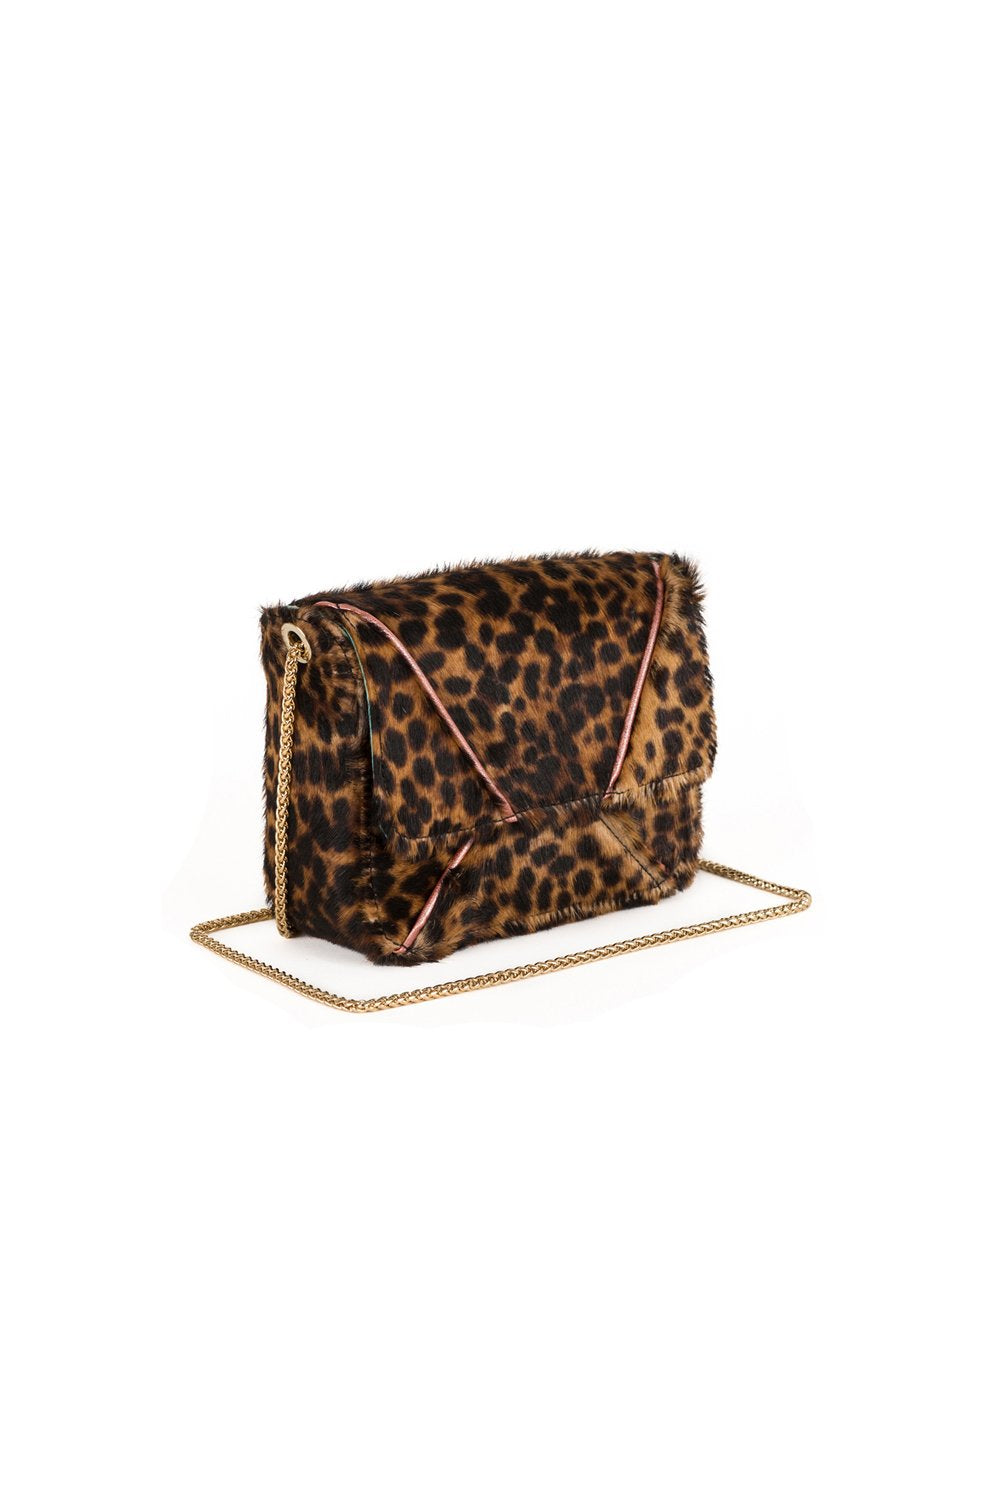 Vivian handbag in leopard printed leather